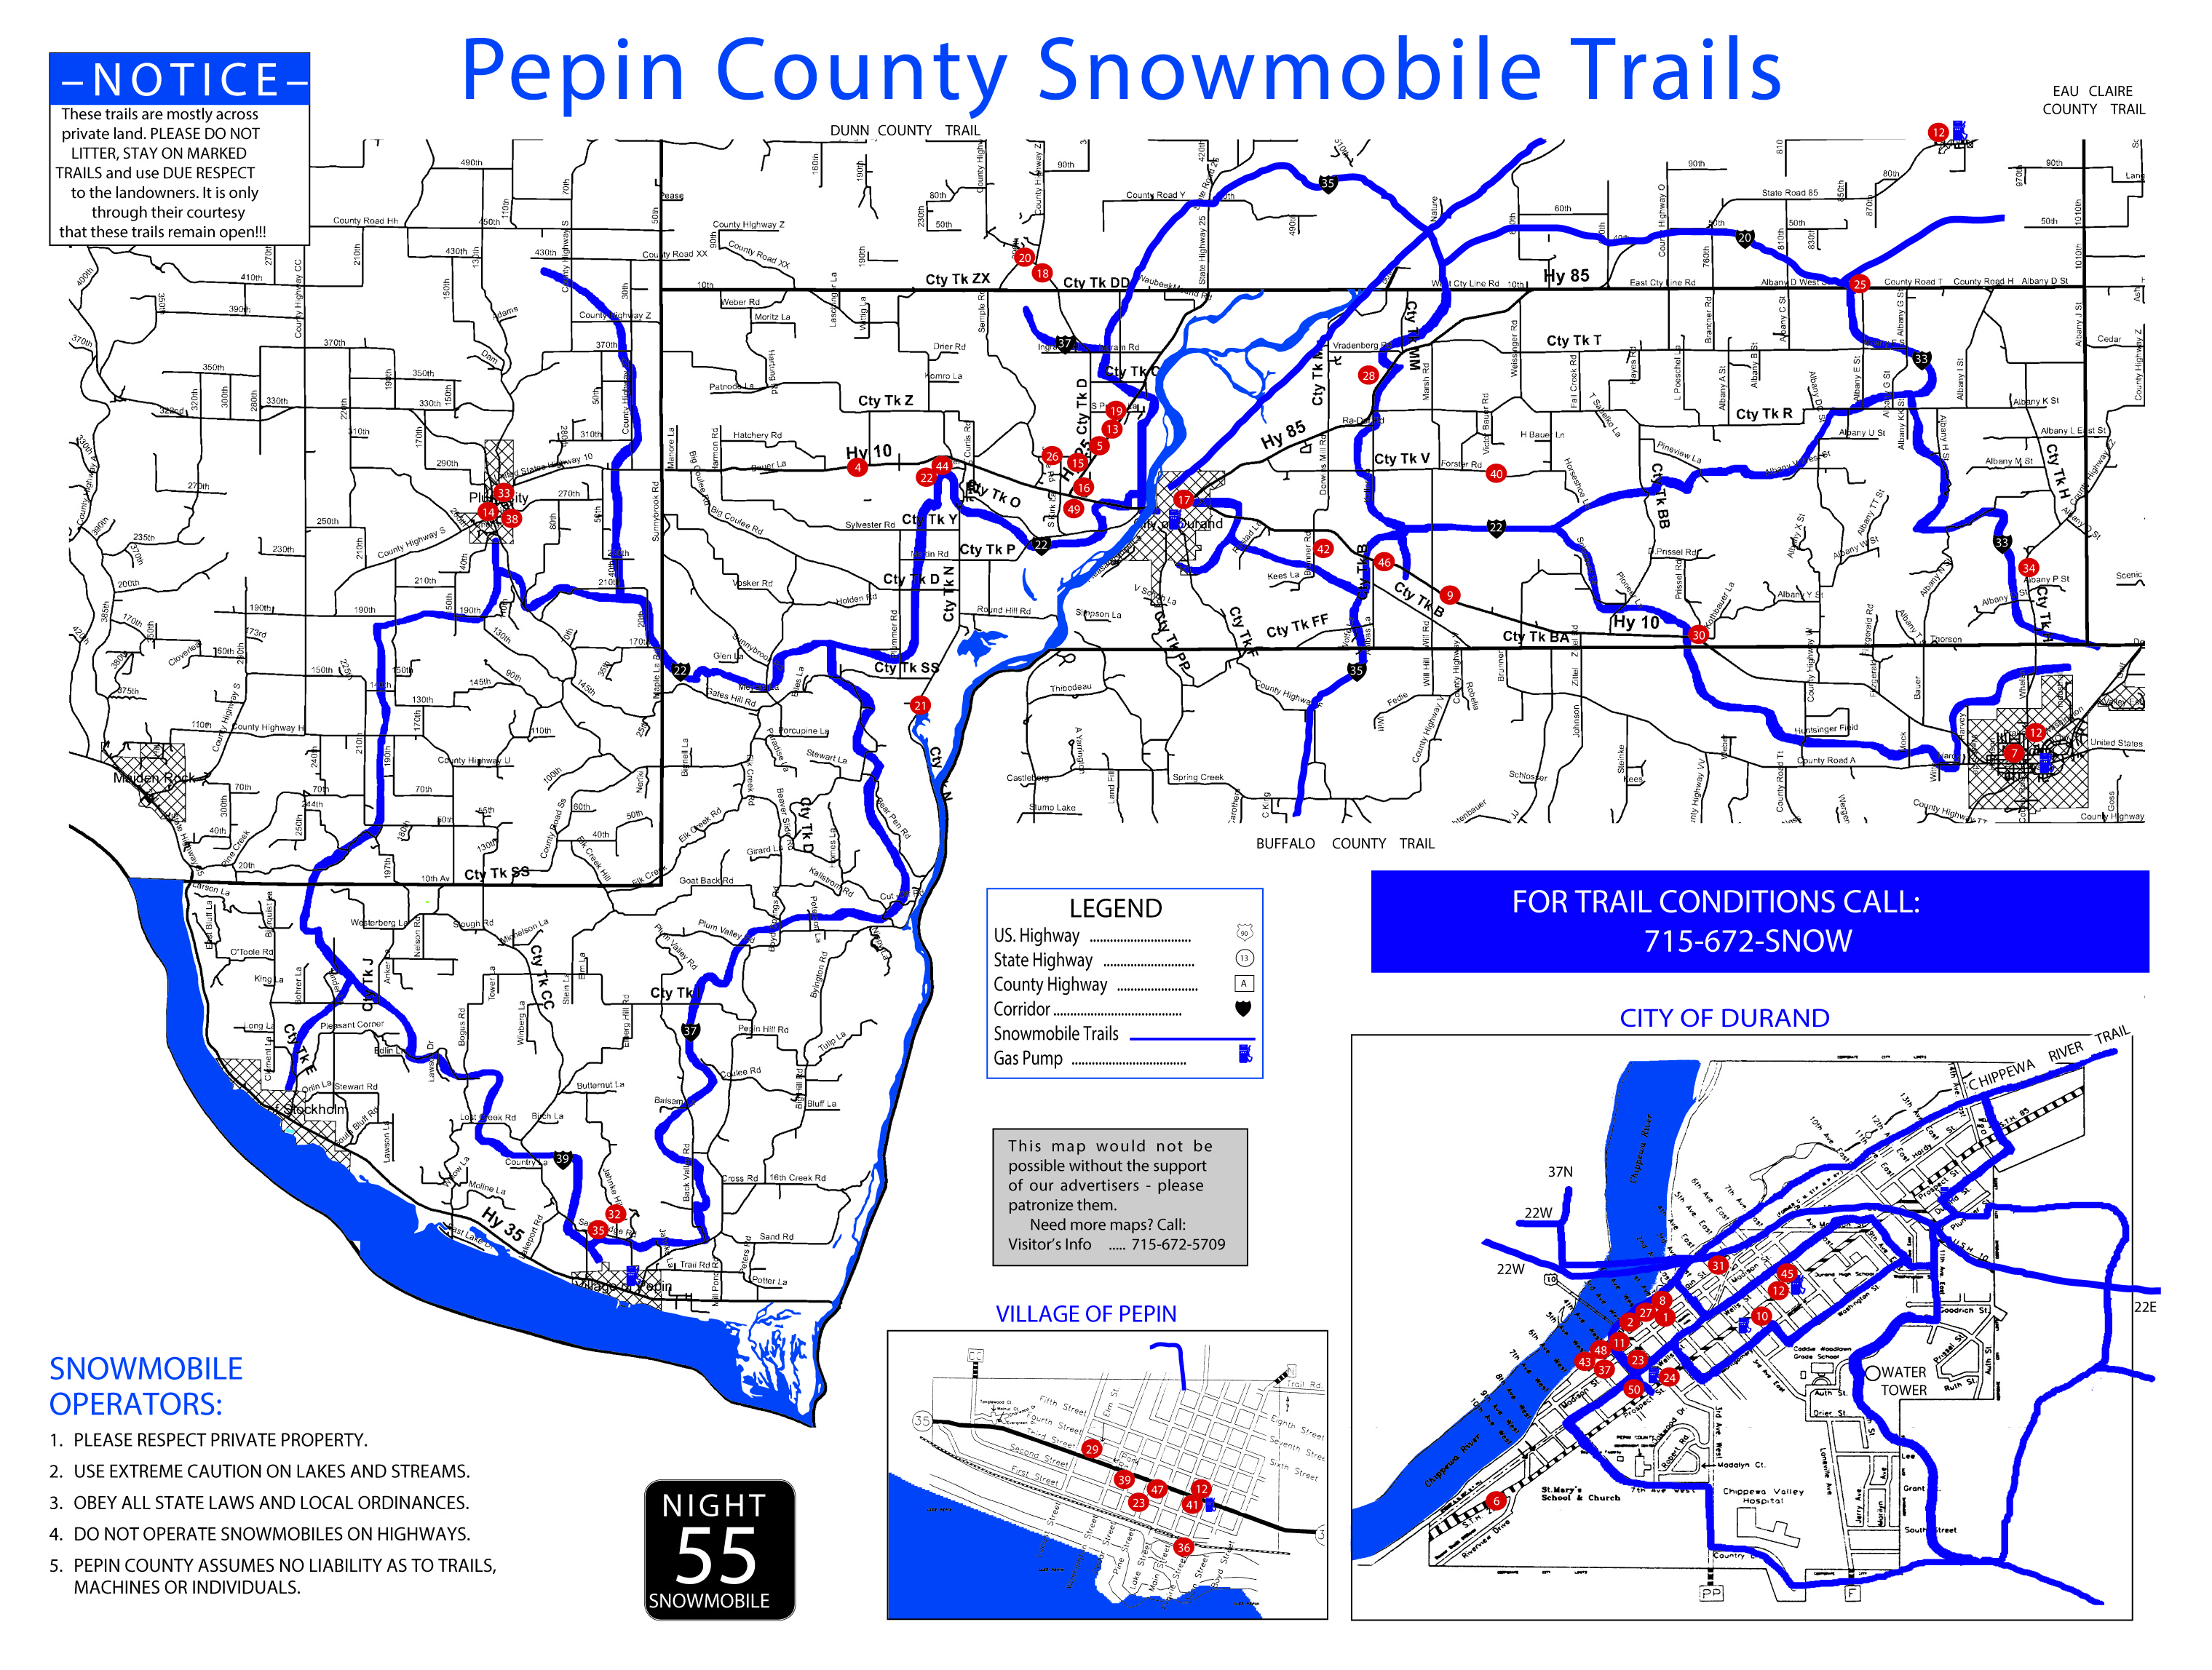 Wisconsin Snowmobile Trail Maps on vermont snowmobile trail map, green bay snowmobile trail map, dane county parks map, pine mountain ga hiking trail map, vilas county snowmobile map, southern wisconsin snowmobile trail map, dane county wi snowmobile map, kenosha snowmobile trail map, marathon snowmobile trail map, wisconsin dells snowmobile trail map, racine snowmobile trail map, lincoln county wisconsin snowmobile map, oneida county snowmobile map, bayfield wi snowmobile trail map, wisconsin state snowmobile map, northern wisconsin snowmobile trail map, dane county wisconsin snowmobile trails, dane county area map, langlade county snowmobile map, wi state snowmobile trail map,